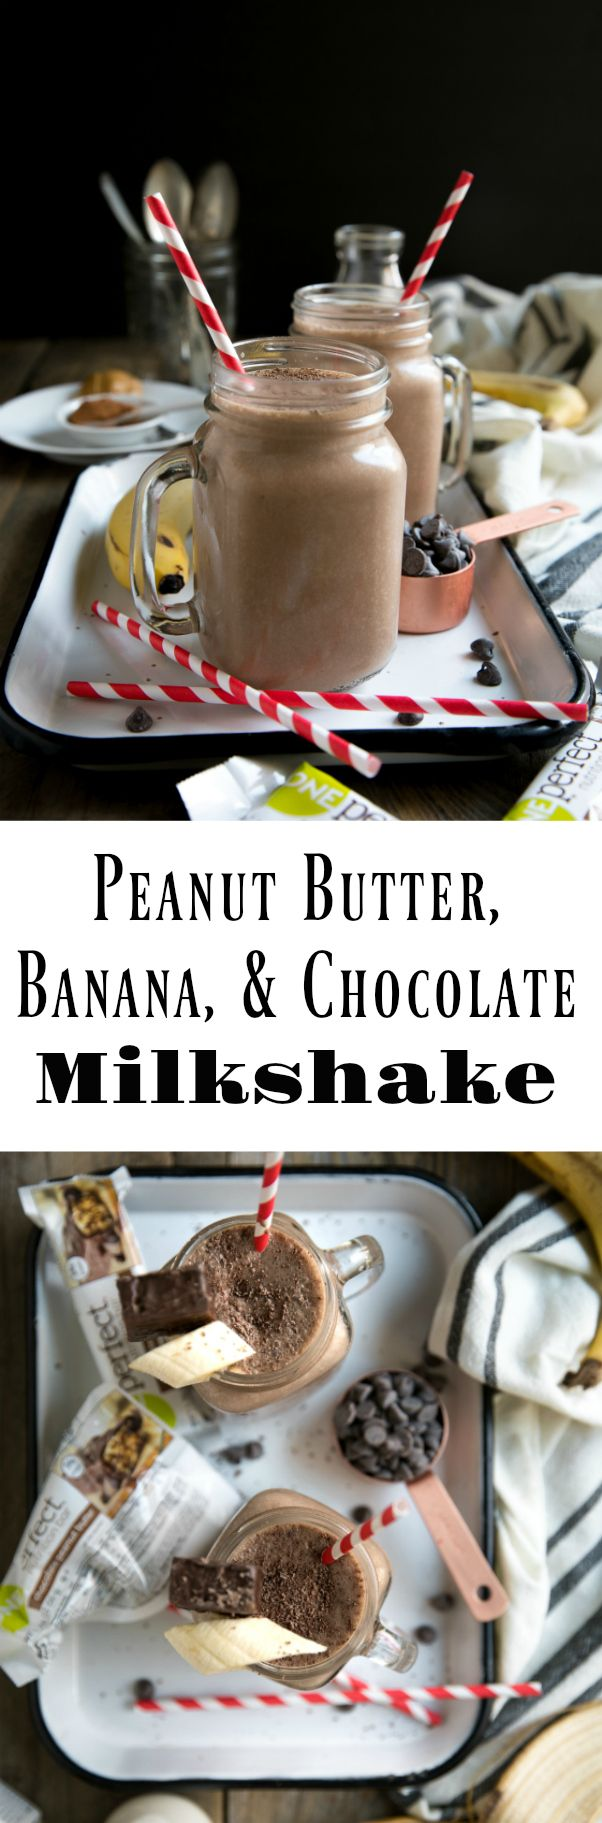 Peanut Butter, Banana, and Chocolate ZonePerfect Nutrition Bar Milkshake #ad #milkshake #healthy #chocolate #smoothie #peanutbutter #breakfast